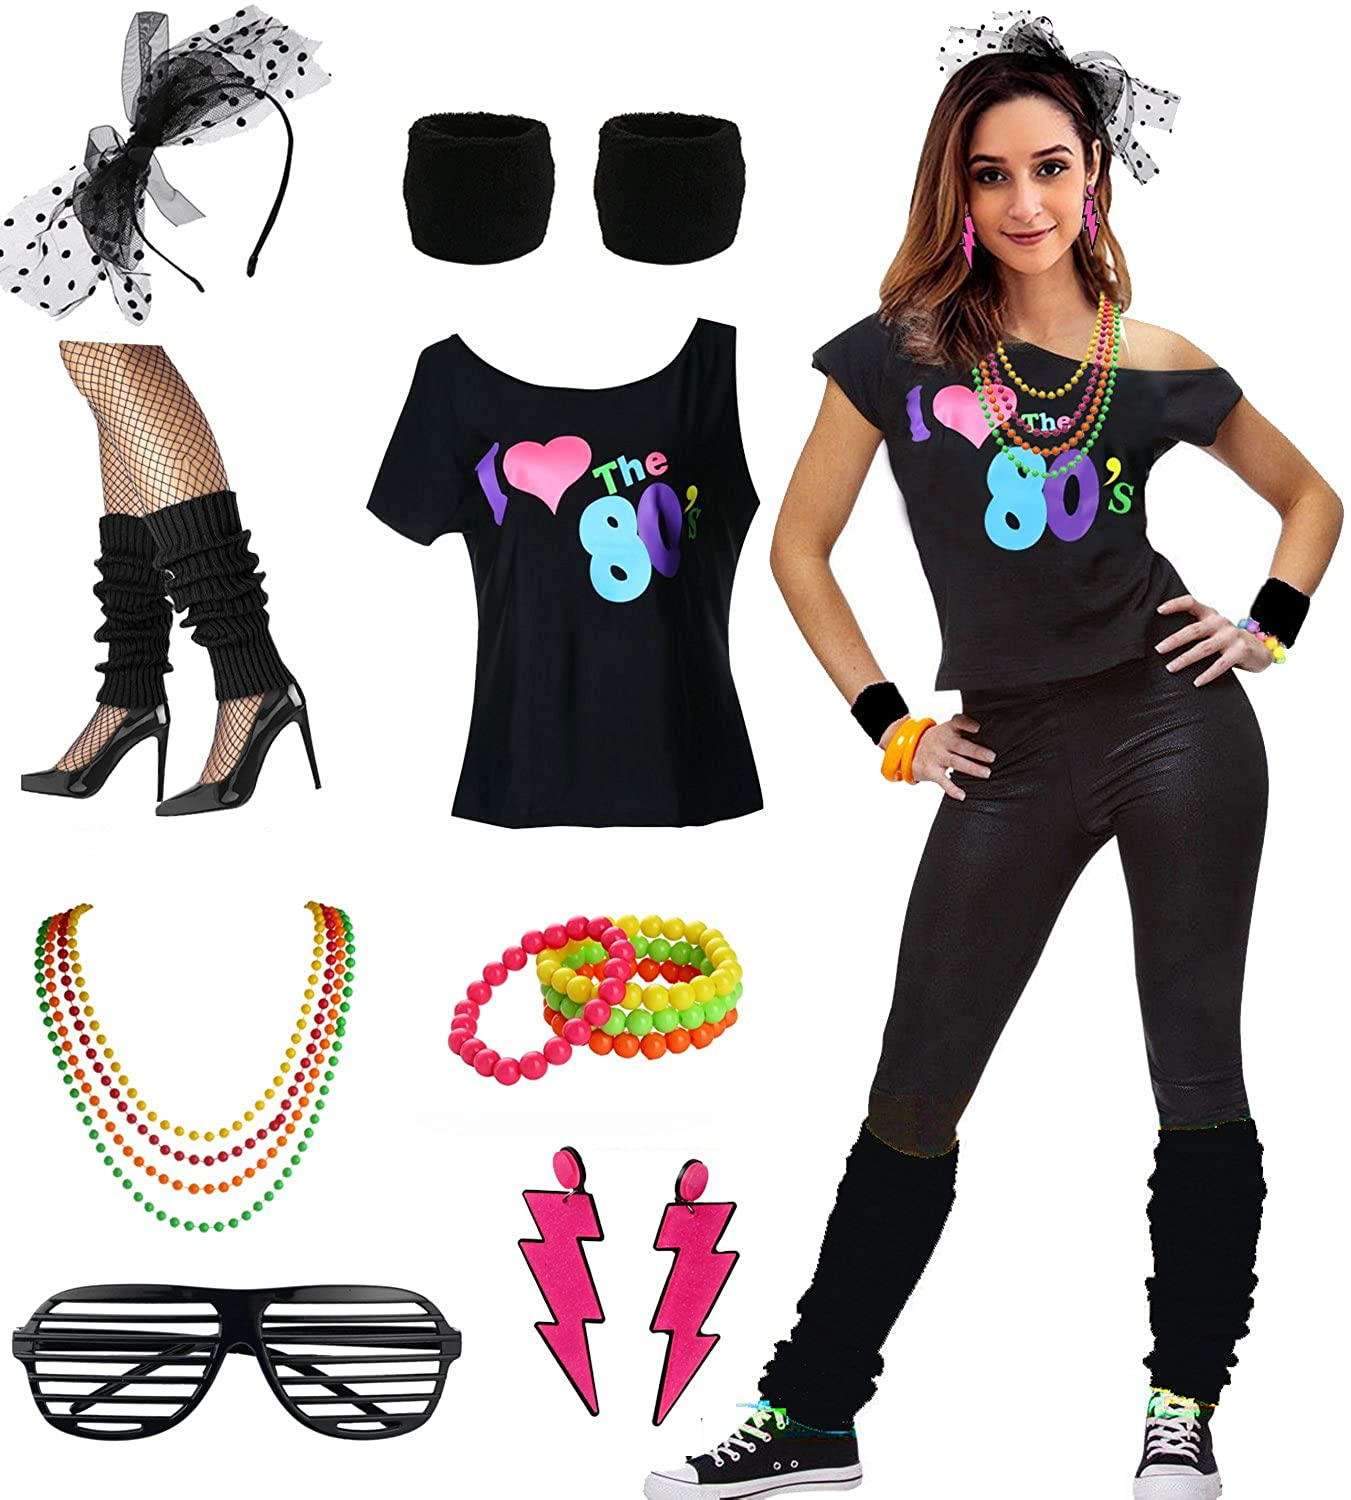 3098f8d9efff2 Amazon.com: Womens I Love The 80's Disco 80s Costume Outfit Accessories:  Clothing